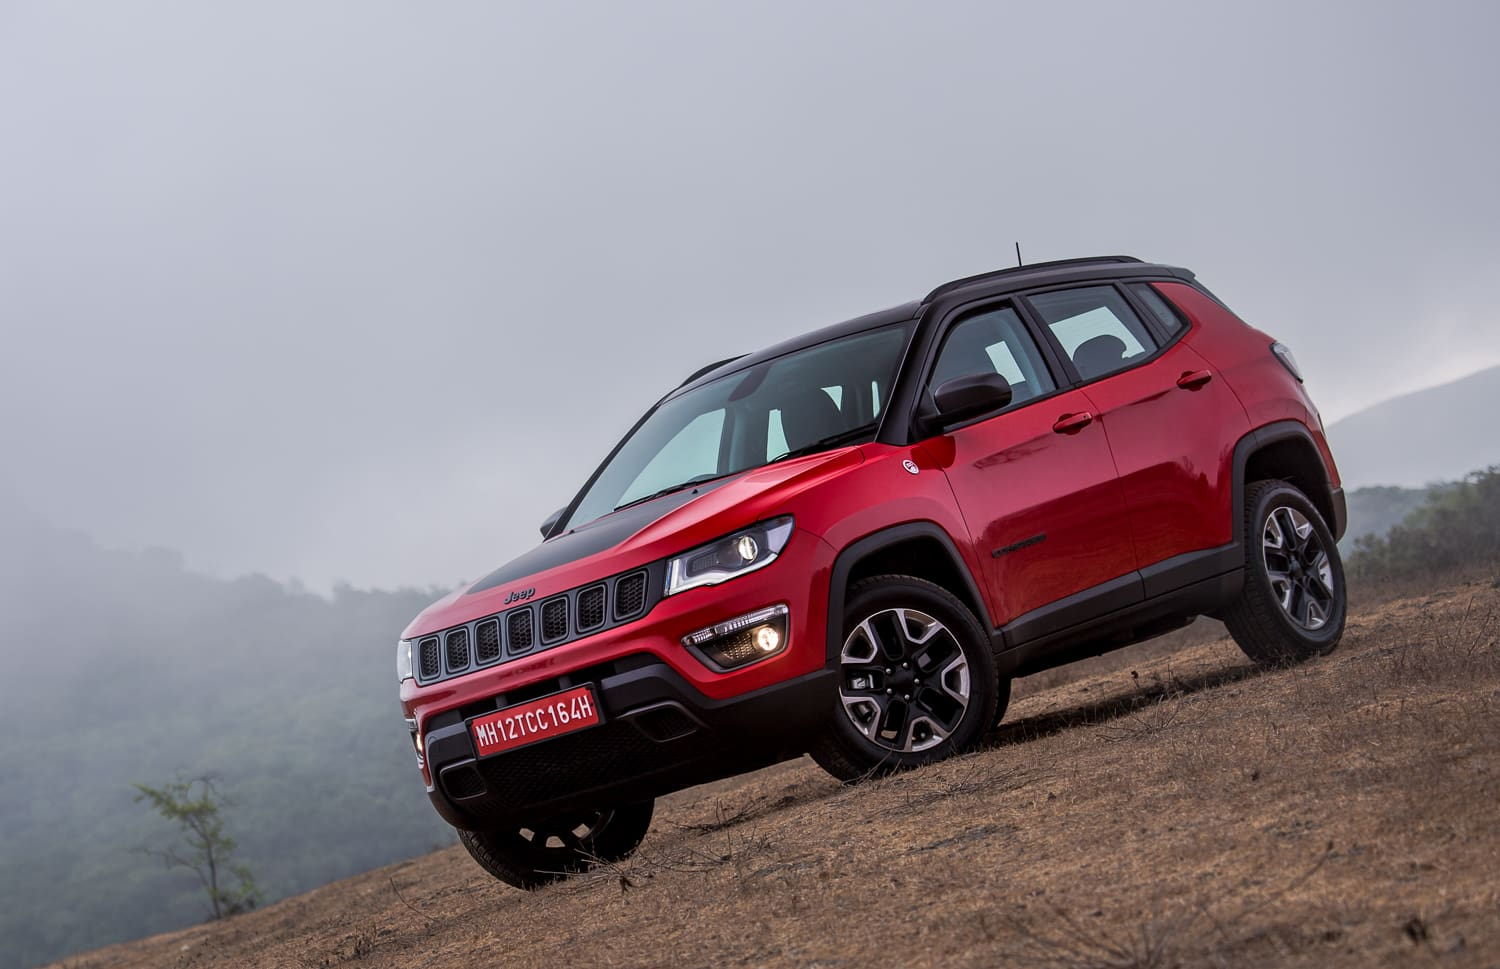 Jeep Compass Trailhawk Price In Hyderabad August 2020 On Road Price Of Compass Trailhawk